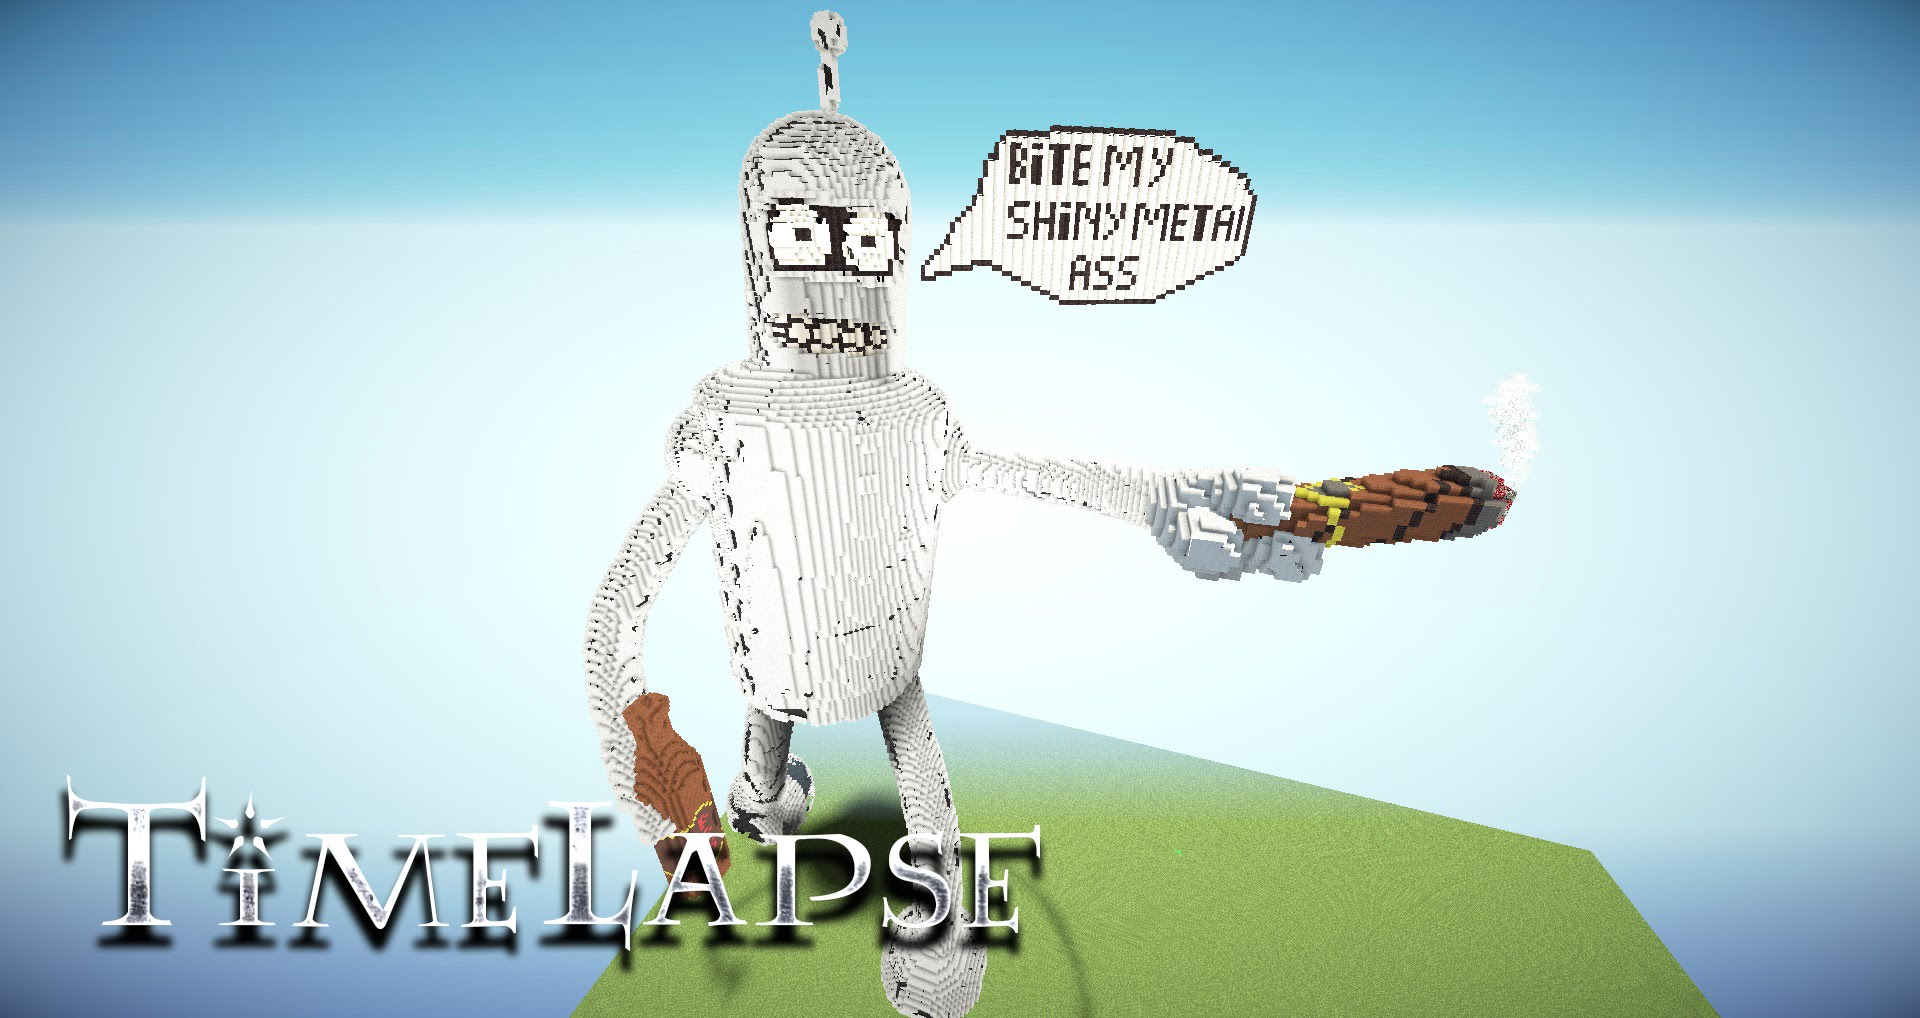 Futuramas Bender Is Impressively Large And Shiny In Timelapse Build